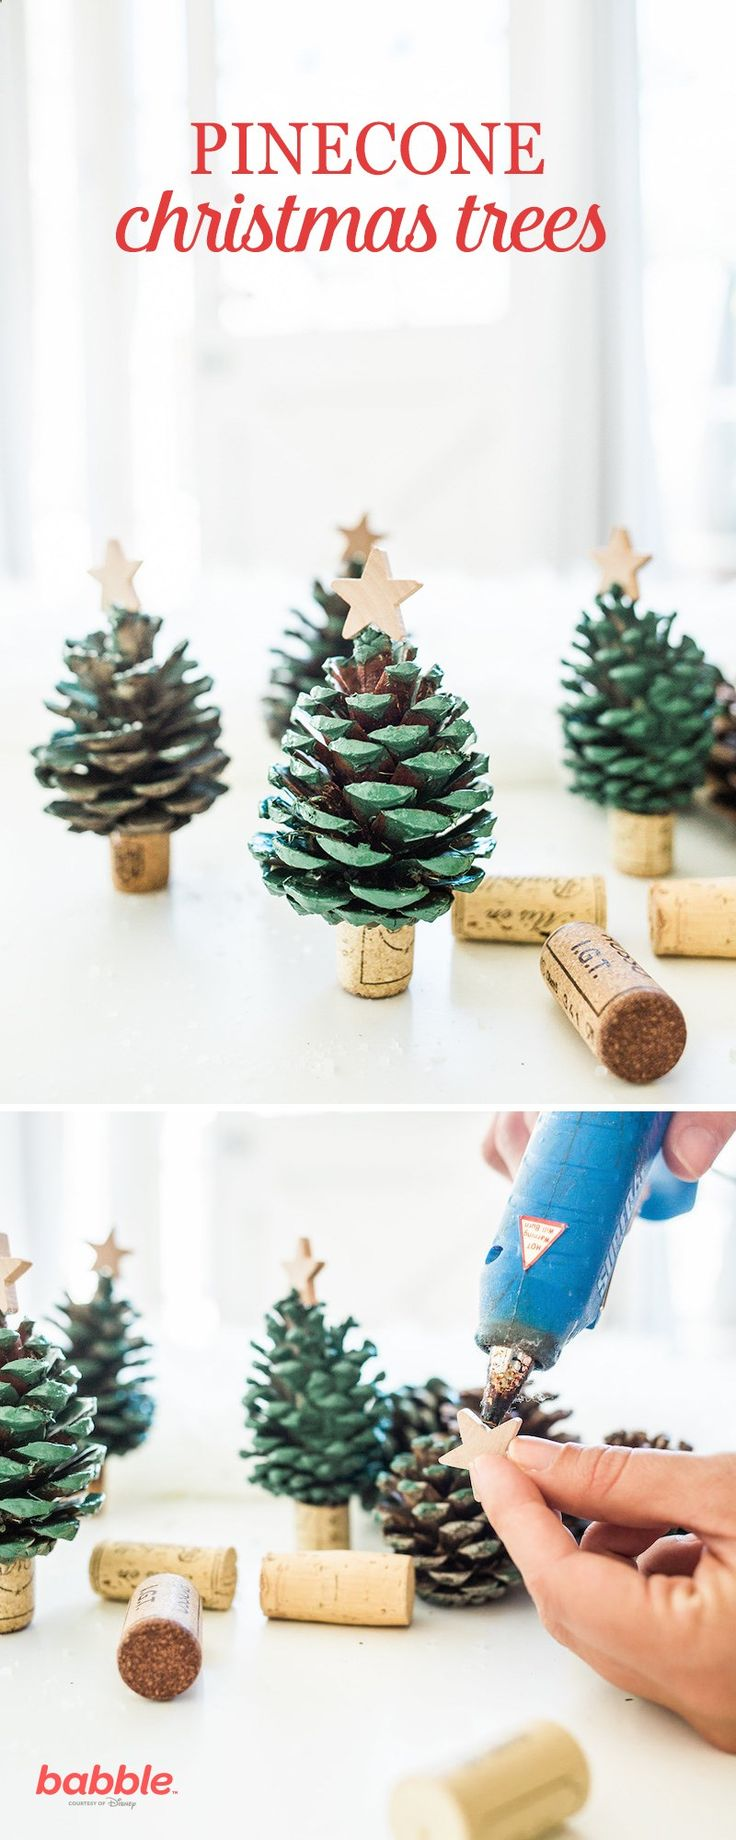 Pinecone Xmas tree